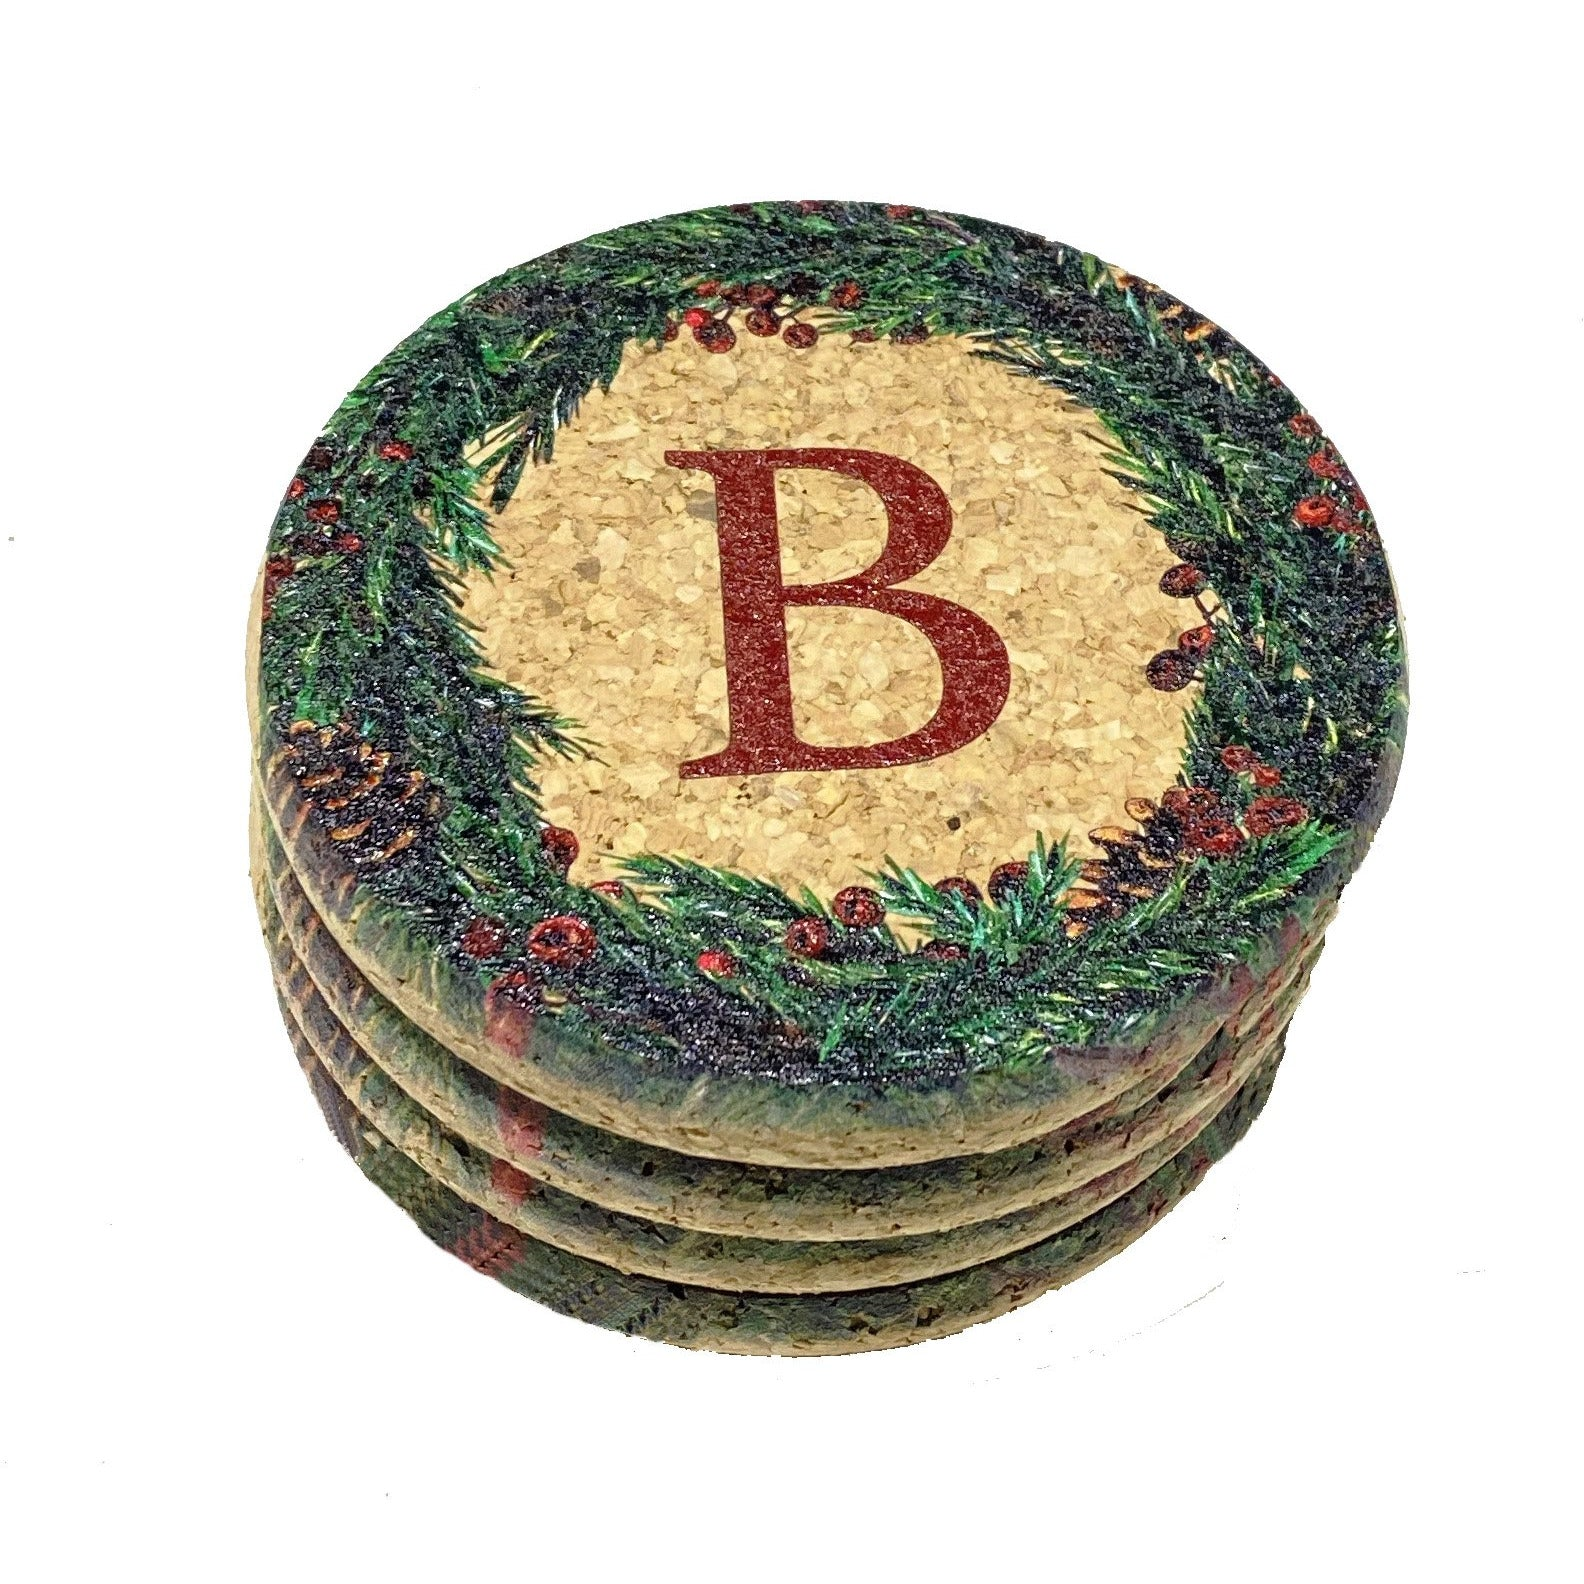 WREATH CORK TRIVETS AND COASTERS